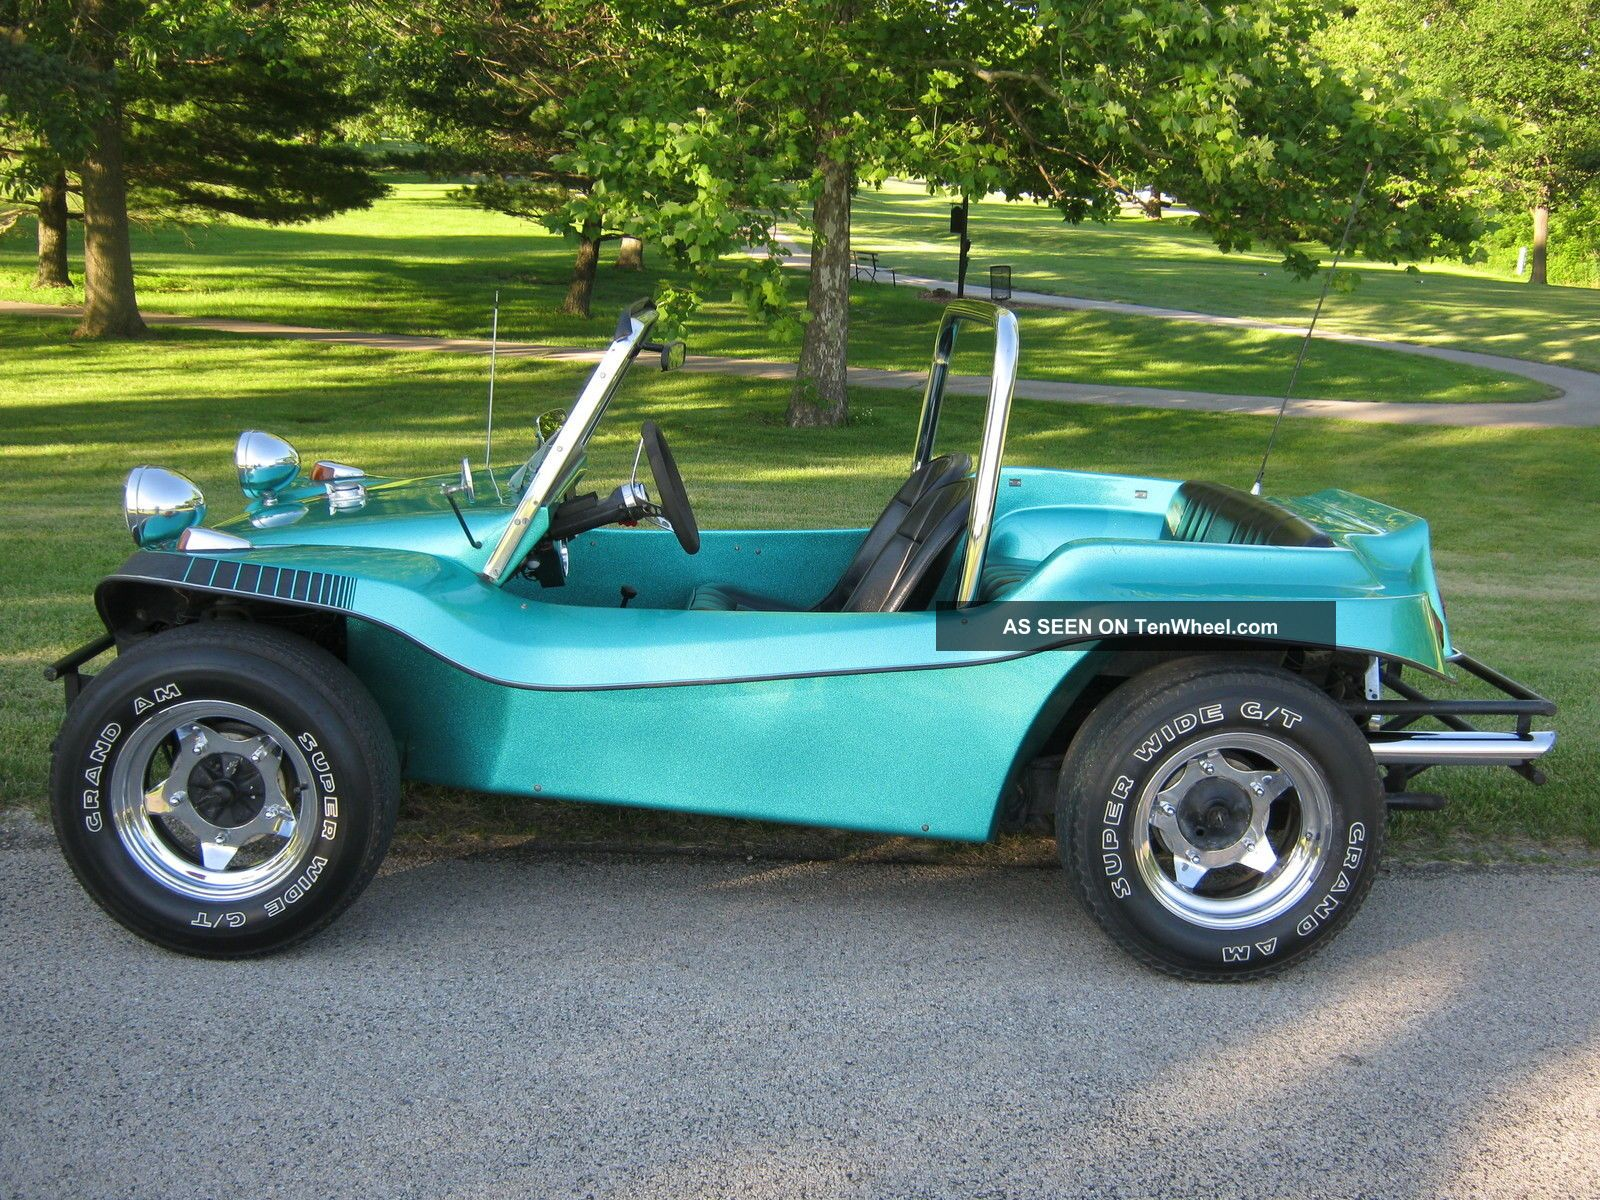 1966 volkswagen vw dune buggy meyers manx replica runs drives hardtop sides. Black Bedroom Furniture Sets. Home Design Ideas